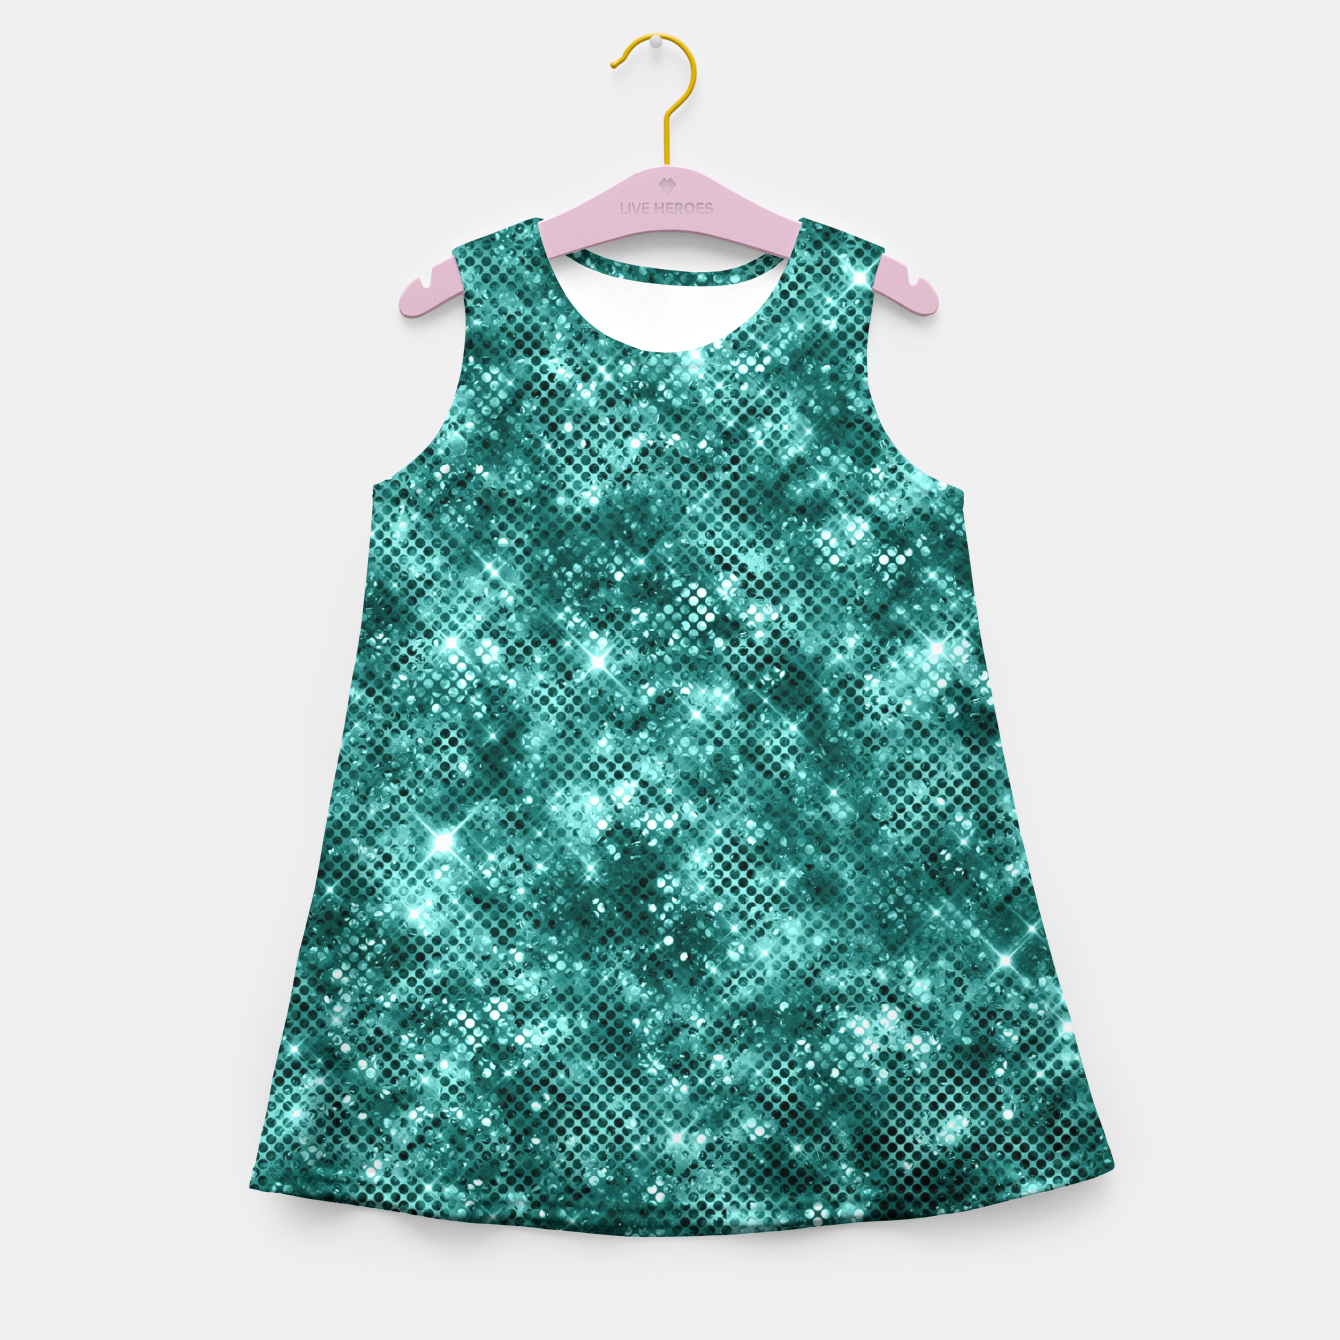 Zdjęcie Glamorous Turquoise Sparkle Dots Girly Elegant Chic Girl's summer dress - Live Heroes